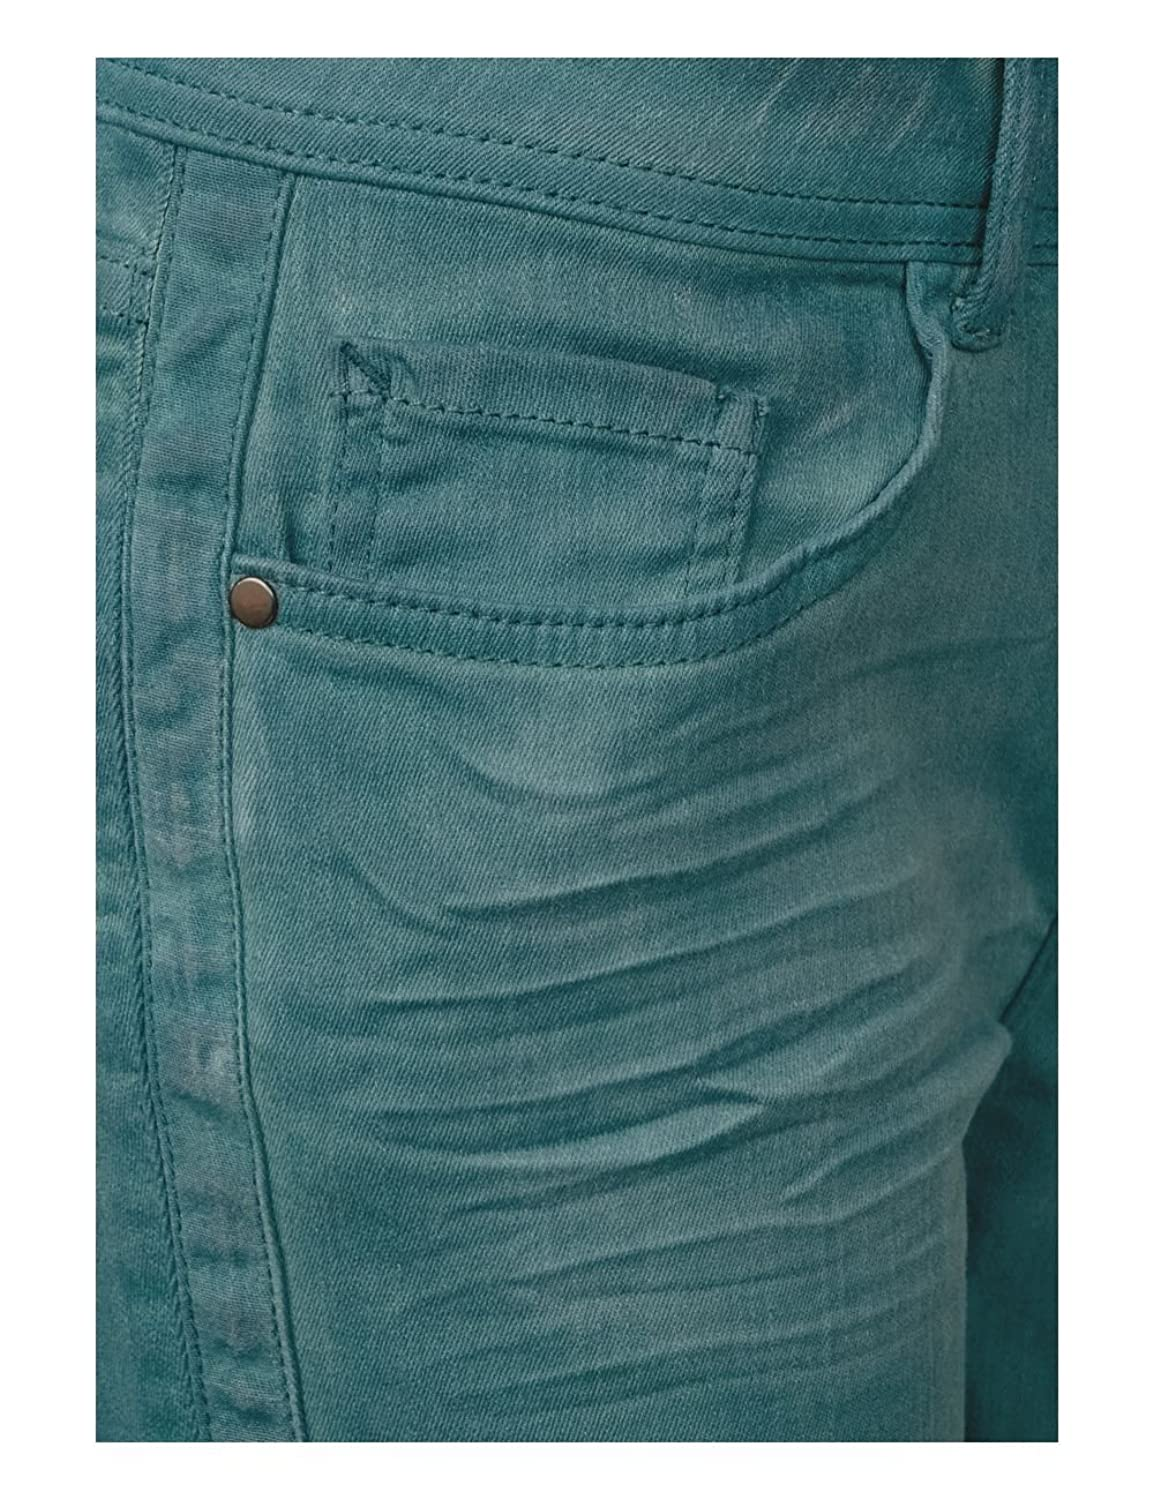 Street One 371241 Jane, Vaqueros Slim para Mujer, Verde (Heavy Teal Green Washed 11331), 30W x 30L